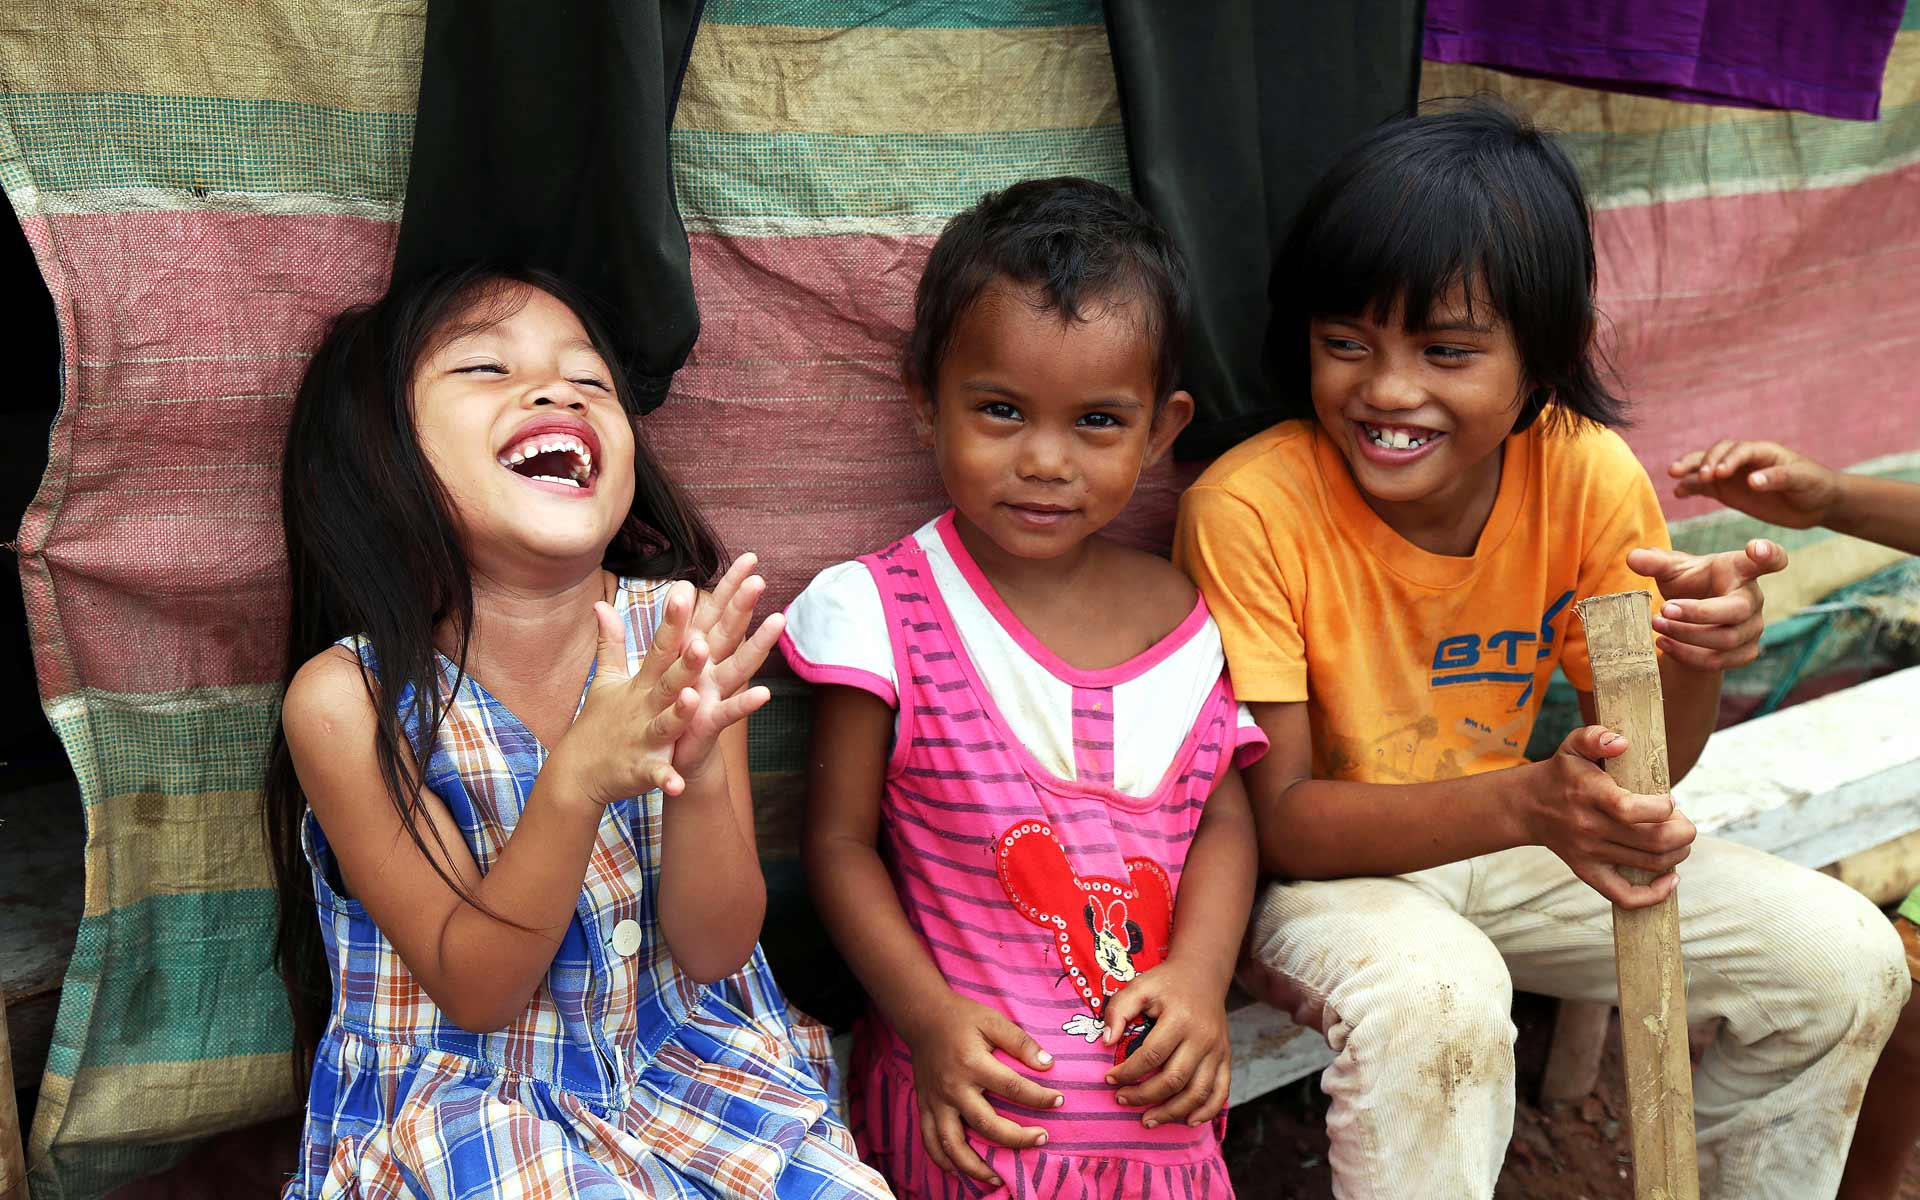 Children in the Philippines laugh together